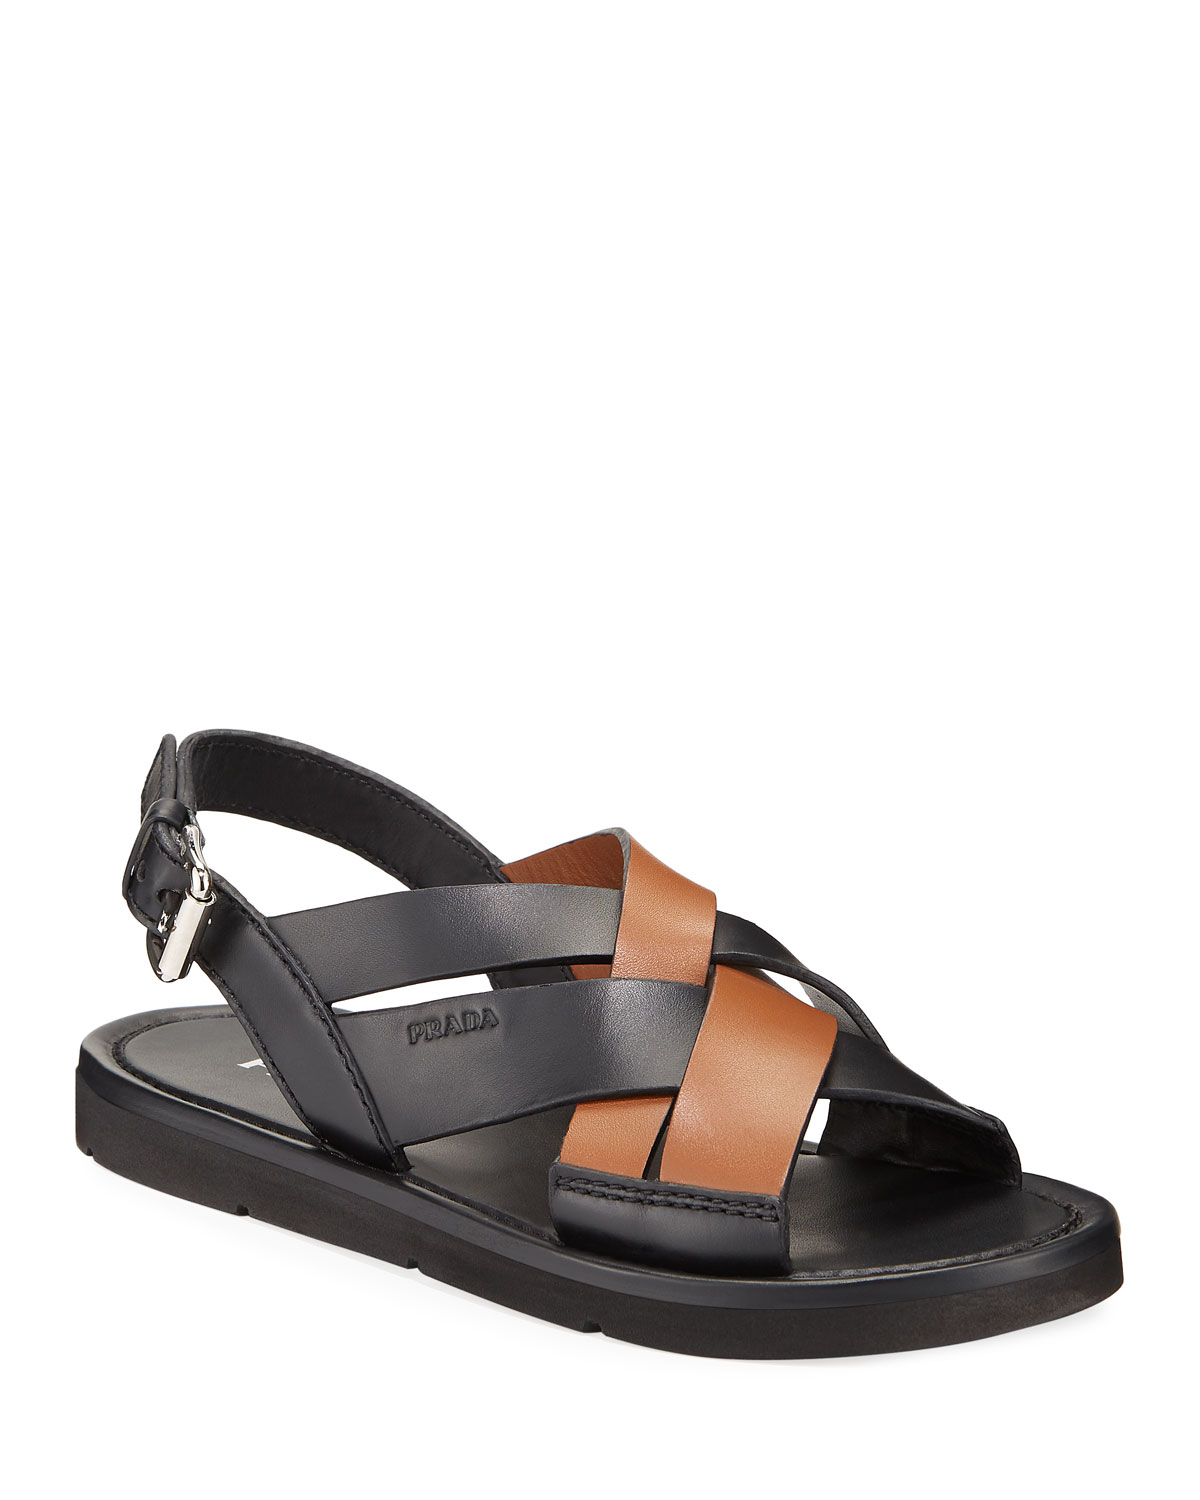 Prada Colorblock Leather Flat Sandals